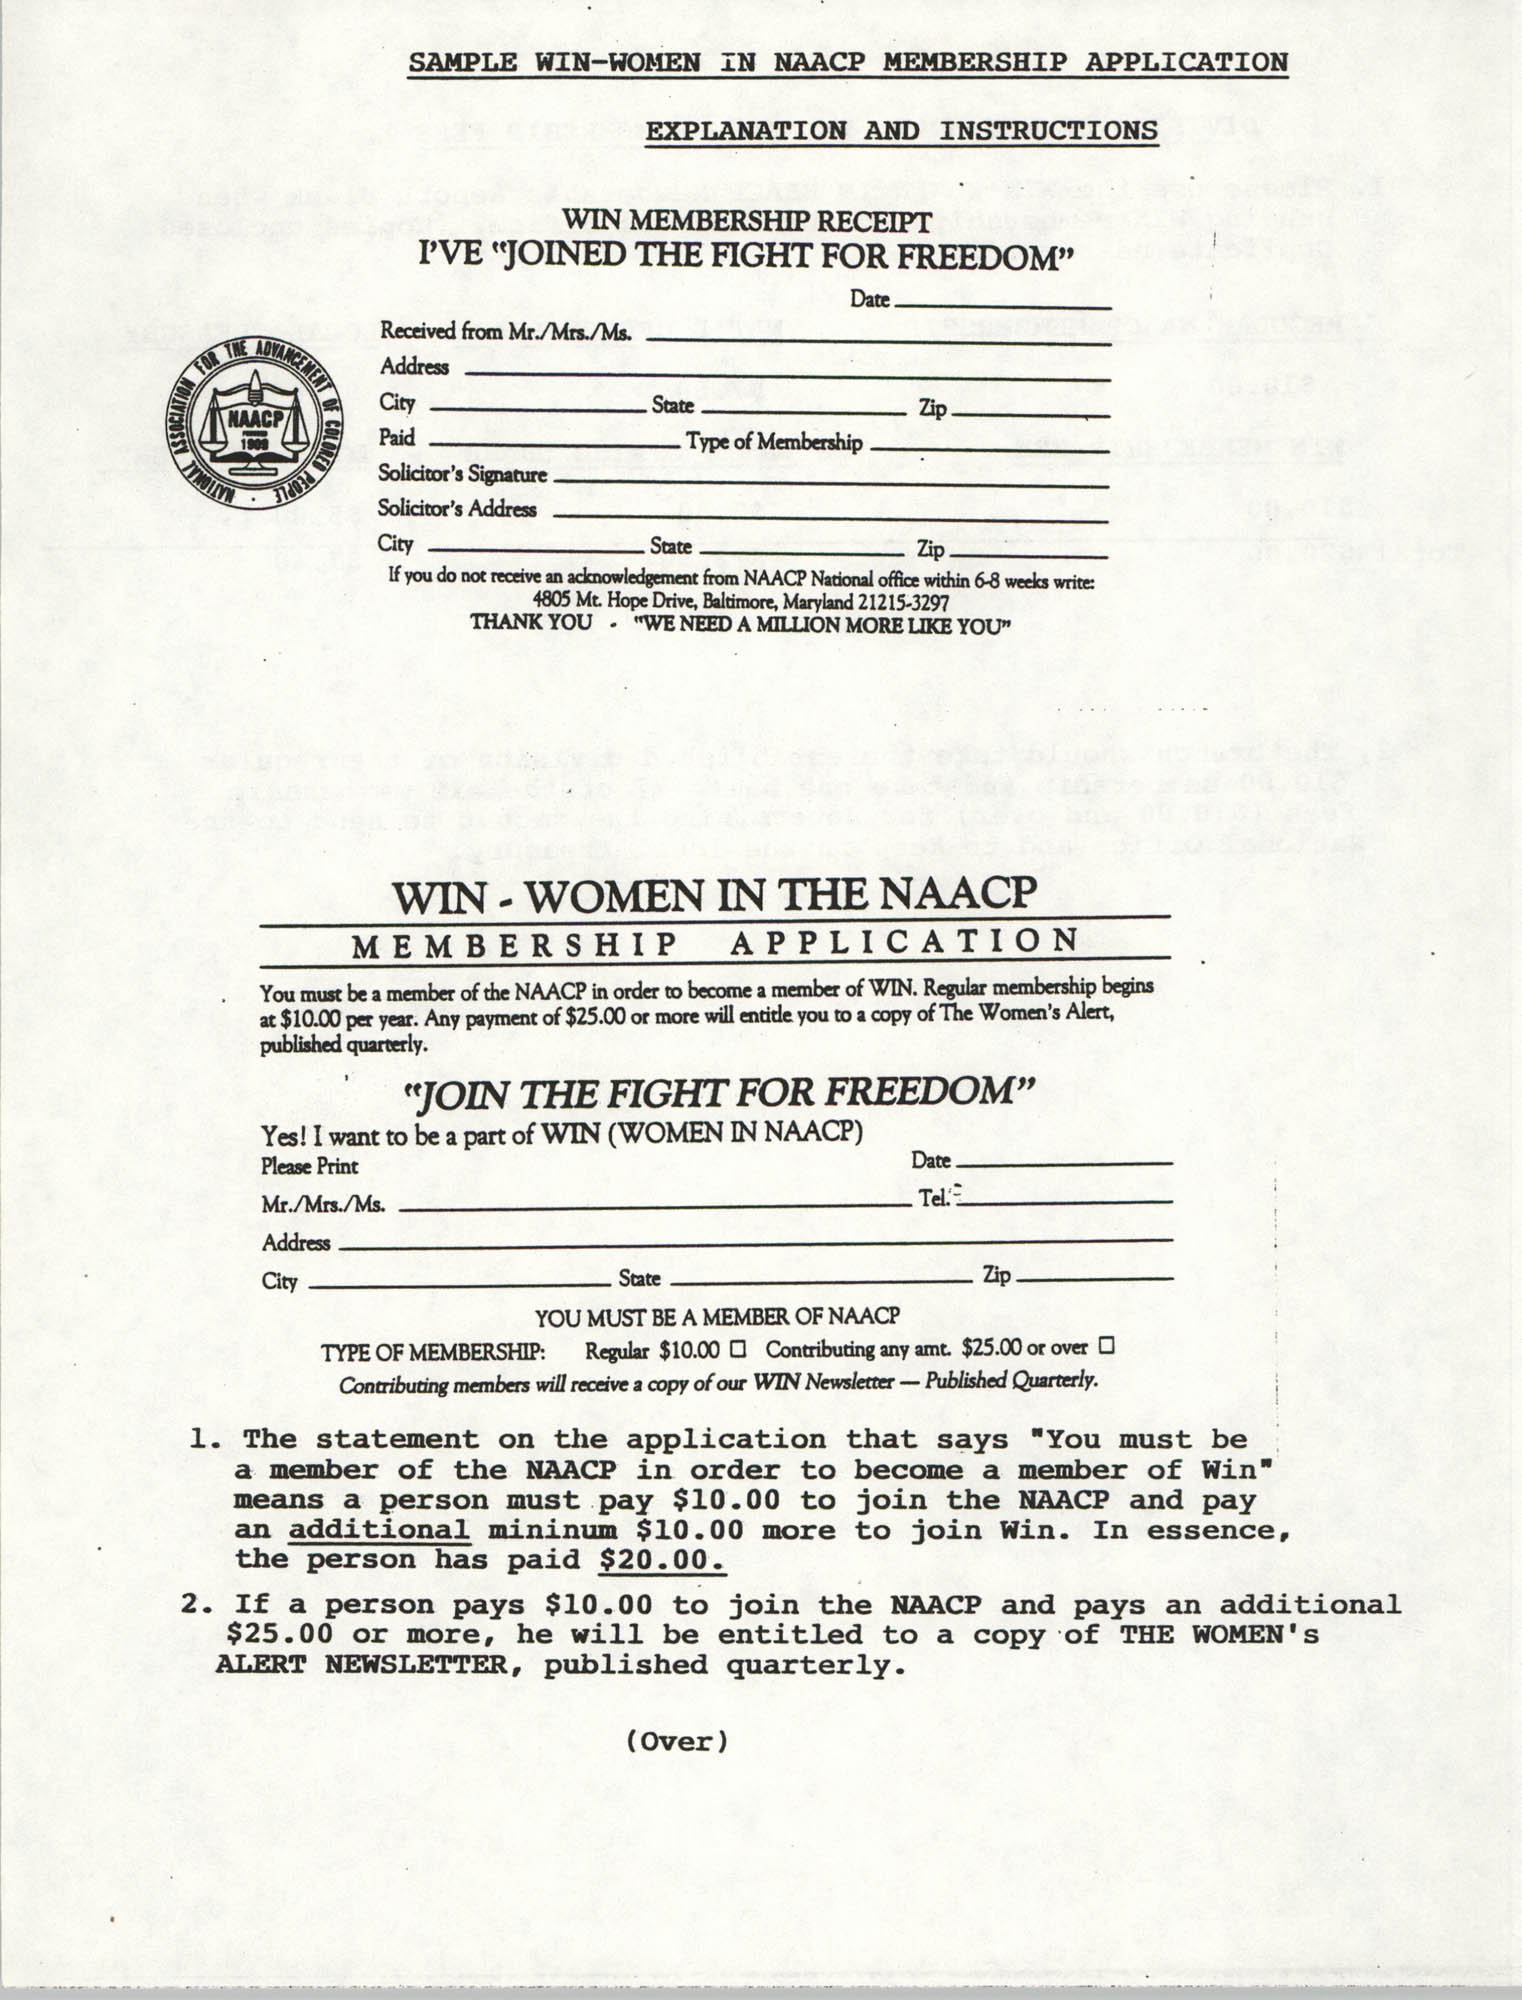 Sample WIN-Women In NAACP Membership Application Explanation and Instructions, Page 1